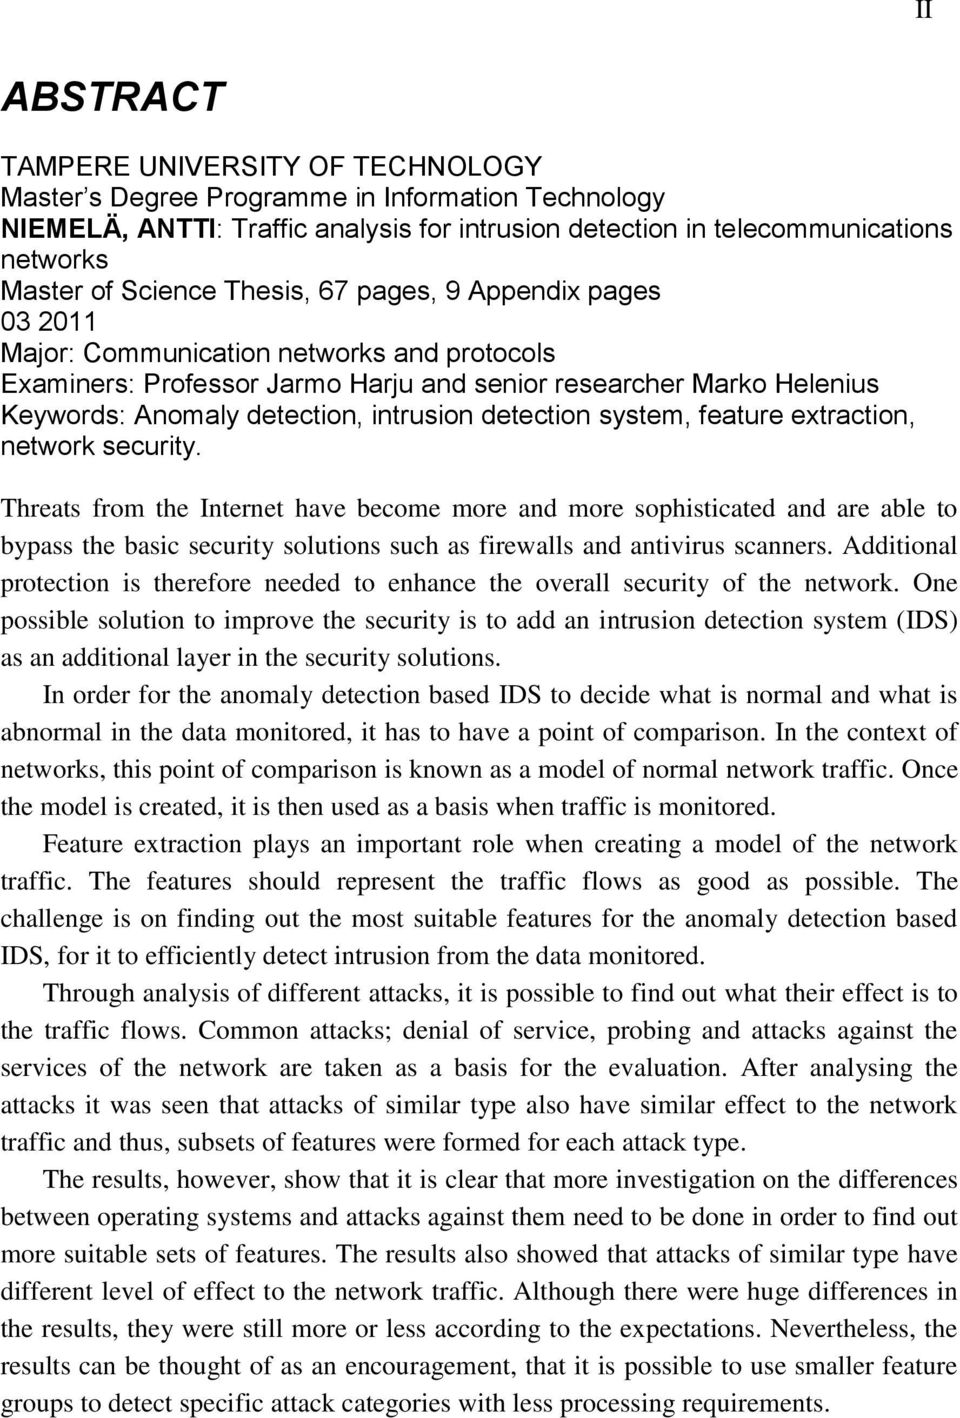 Research paper on network security